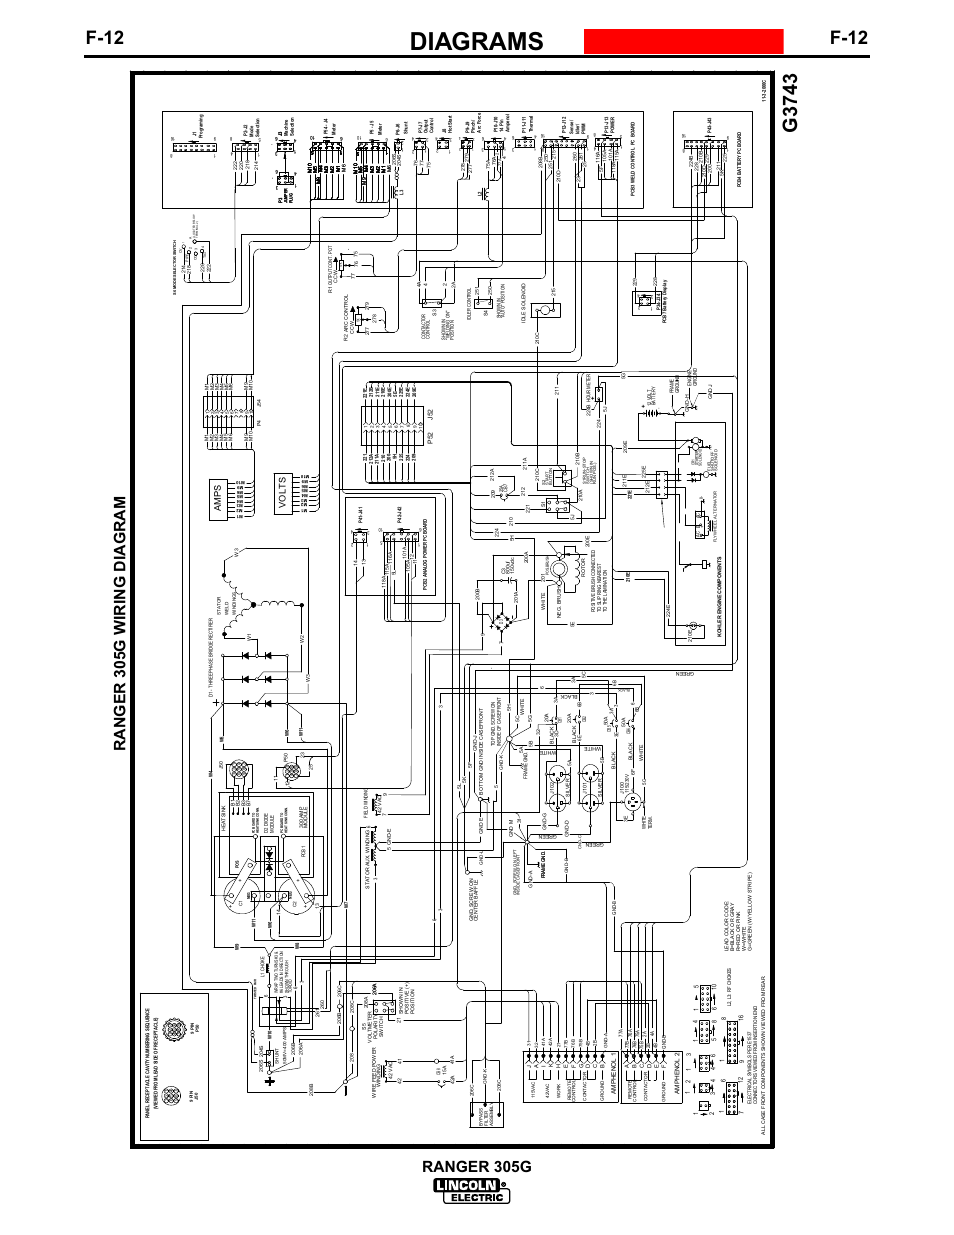 Lincoln 305g Wiring Diagram Diagrams Schematic Schematics Ranger 305d 34 Images Ls Relay